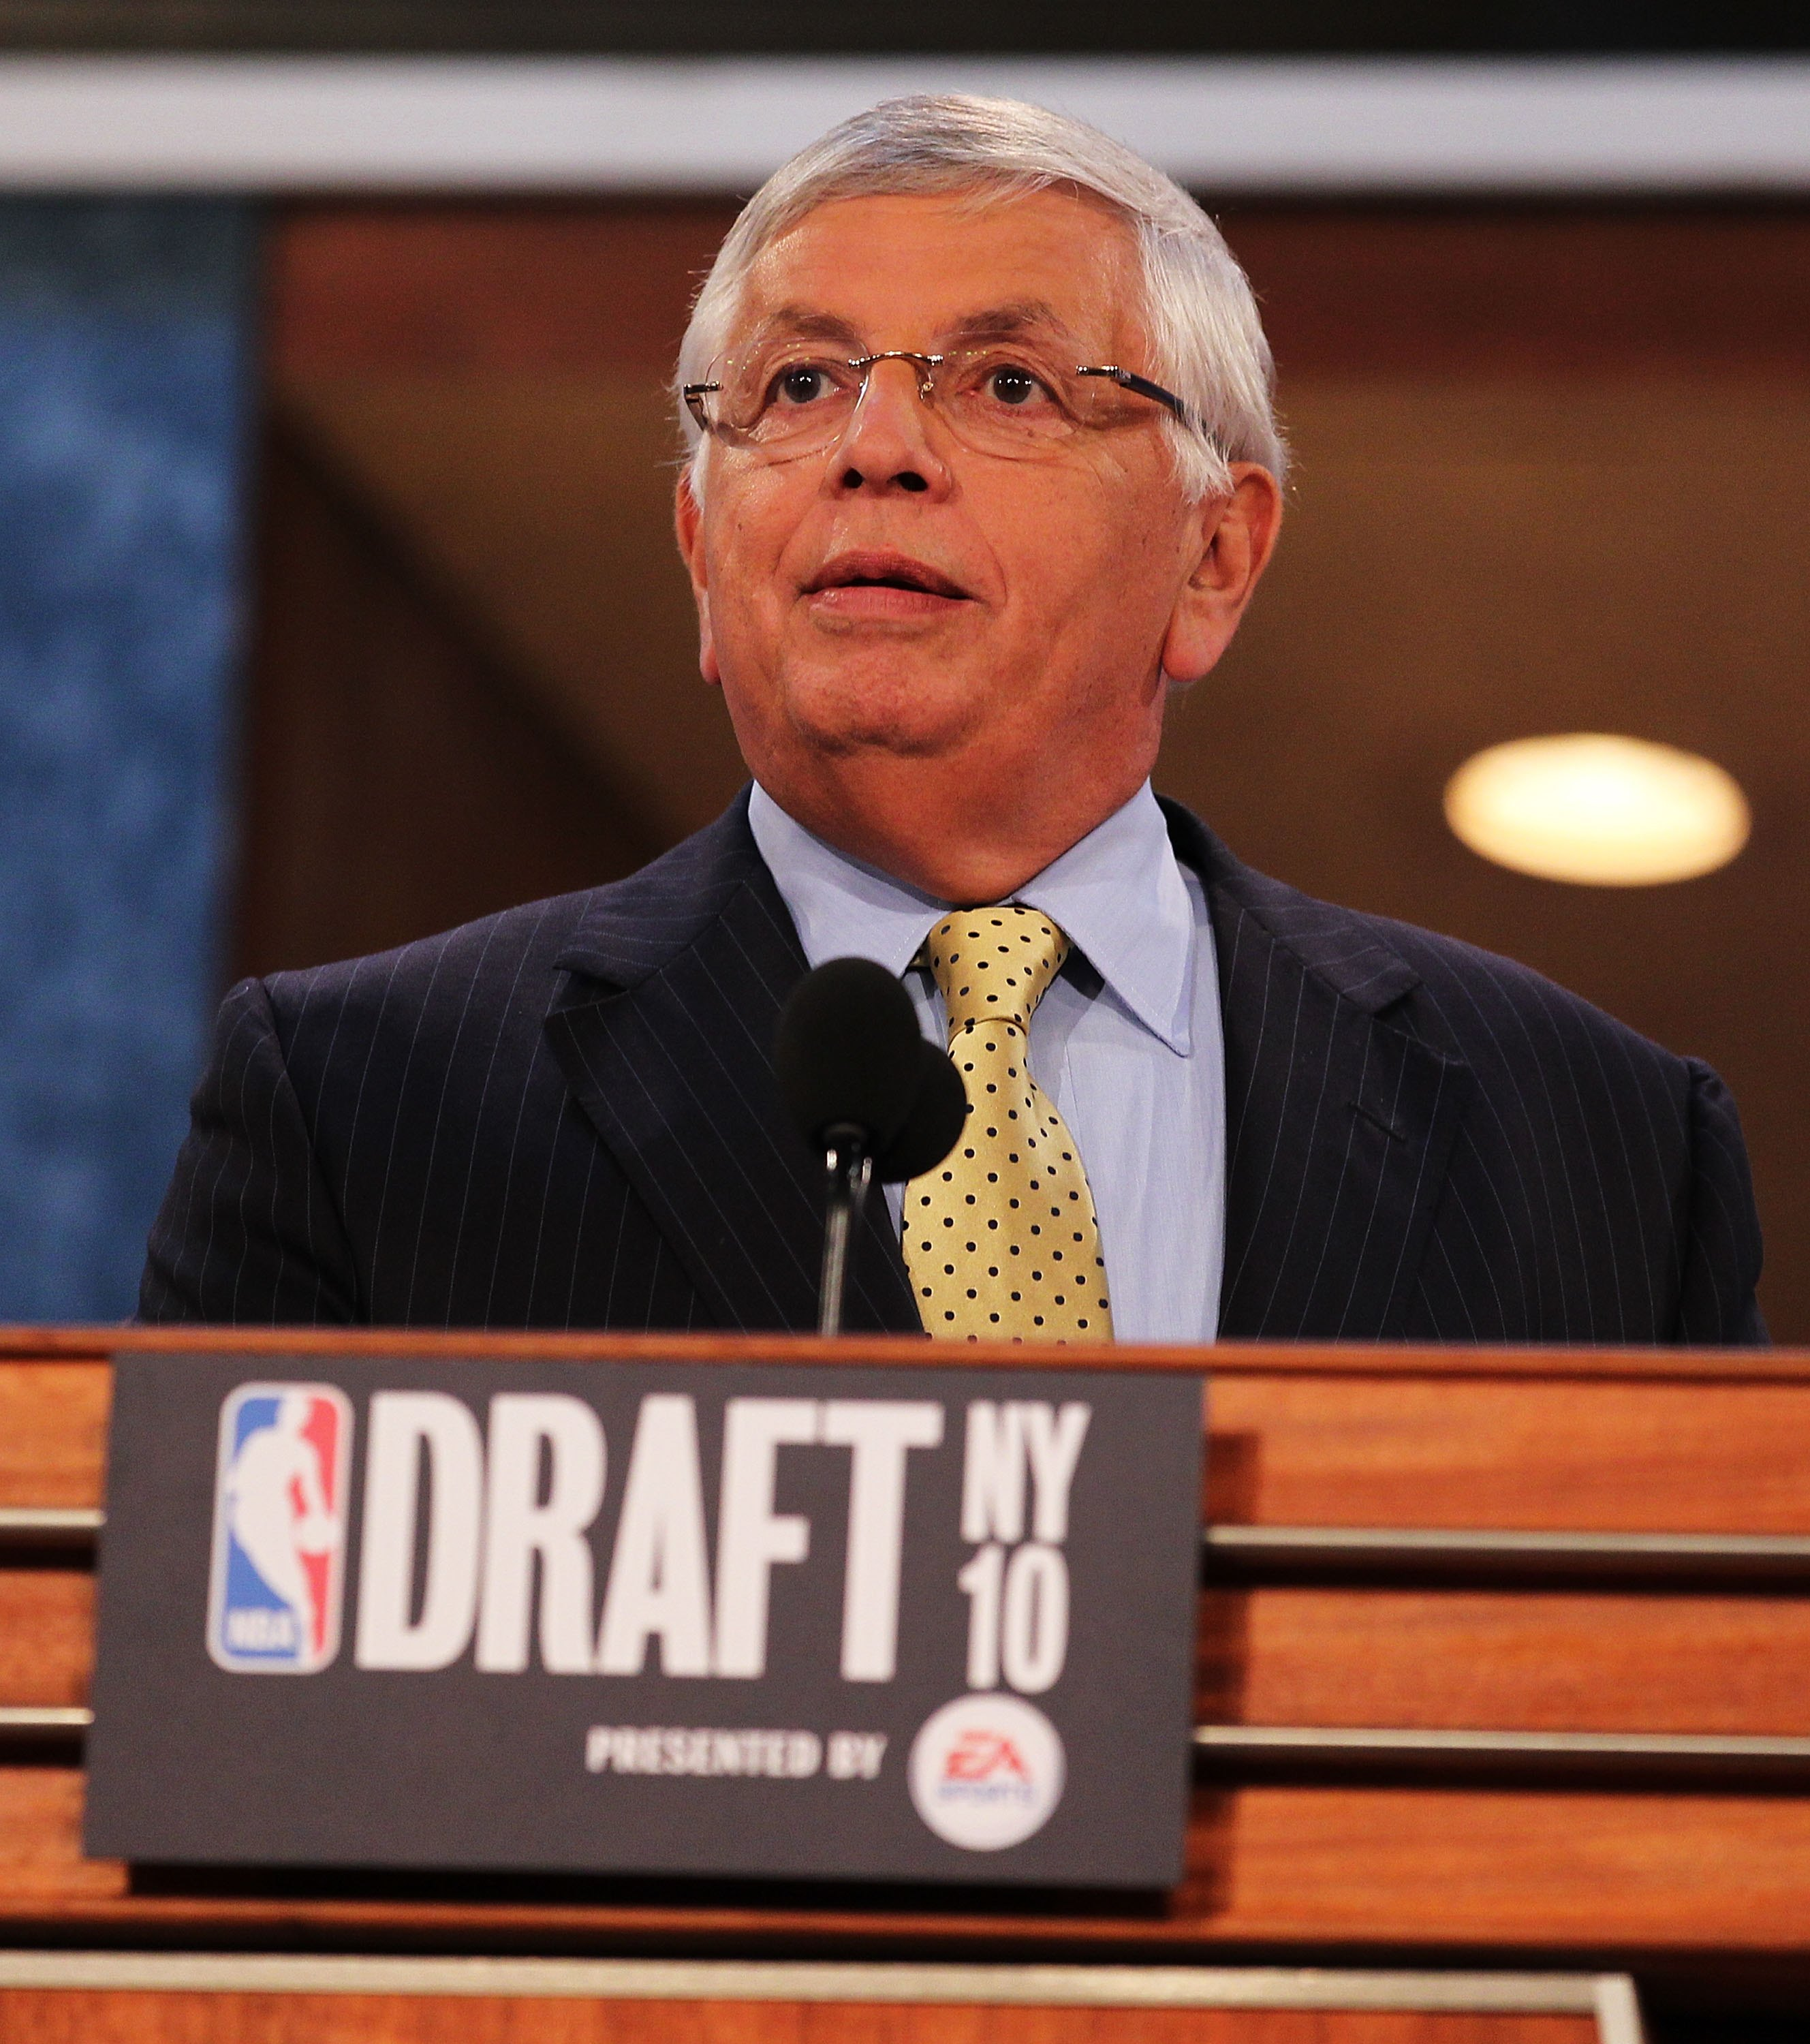 NEW YORK - JUNE 24:  NBA Commisioner David Stern speaks at the NBA Draft at Madison Square Garden on June 24, 2010 in New York, New York.  (Photo by Al Bello/Getty Images)